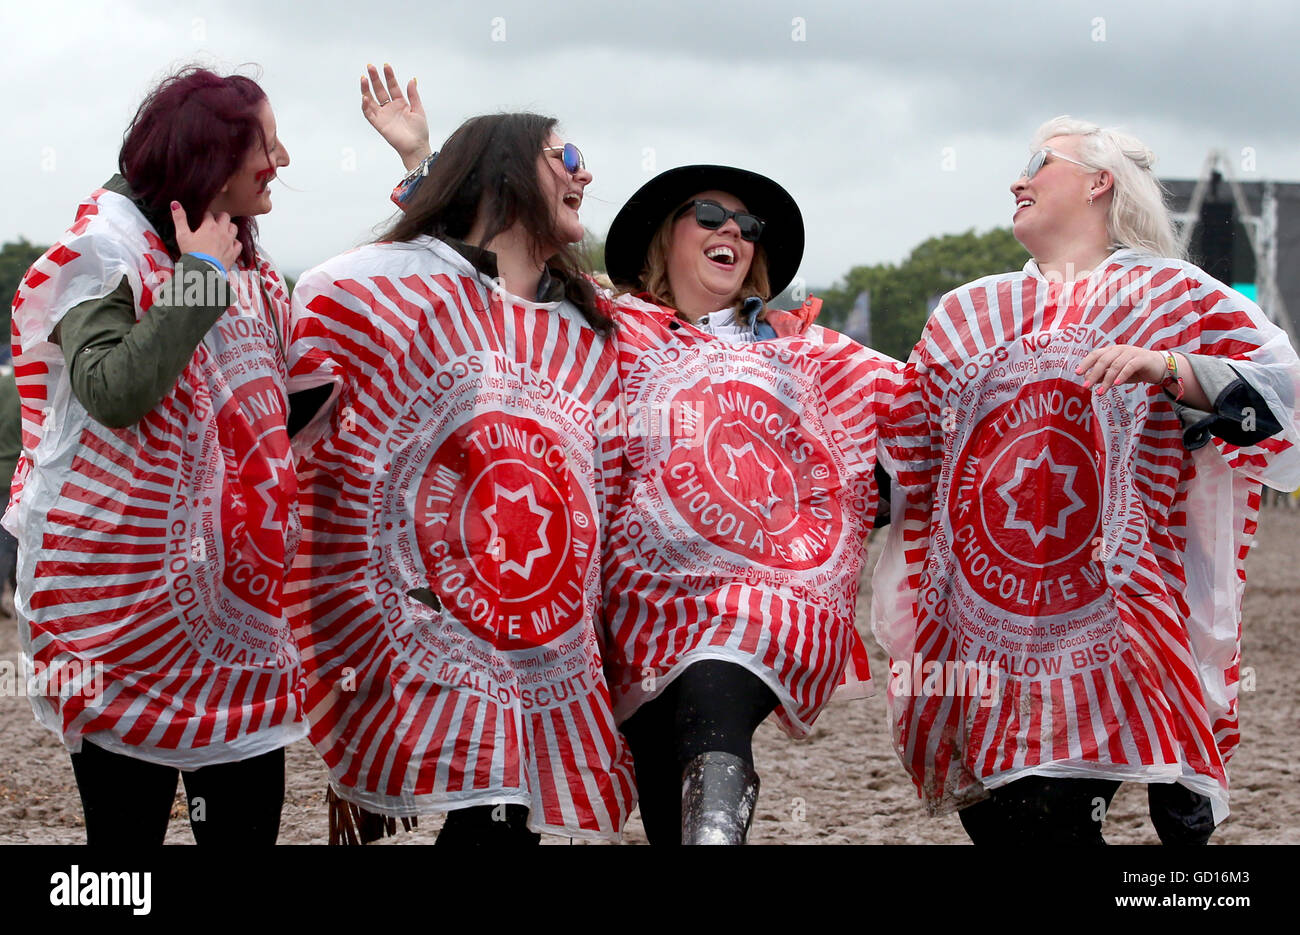 (left to right) Festivalgoers Nicole Green, Jacqui Paterson, Cheryl McBride and Sharon Morgan, all from Glasgow, - Stock Image